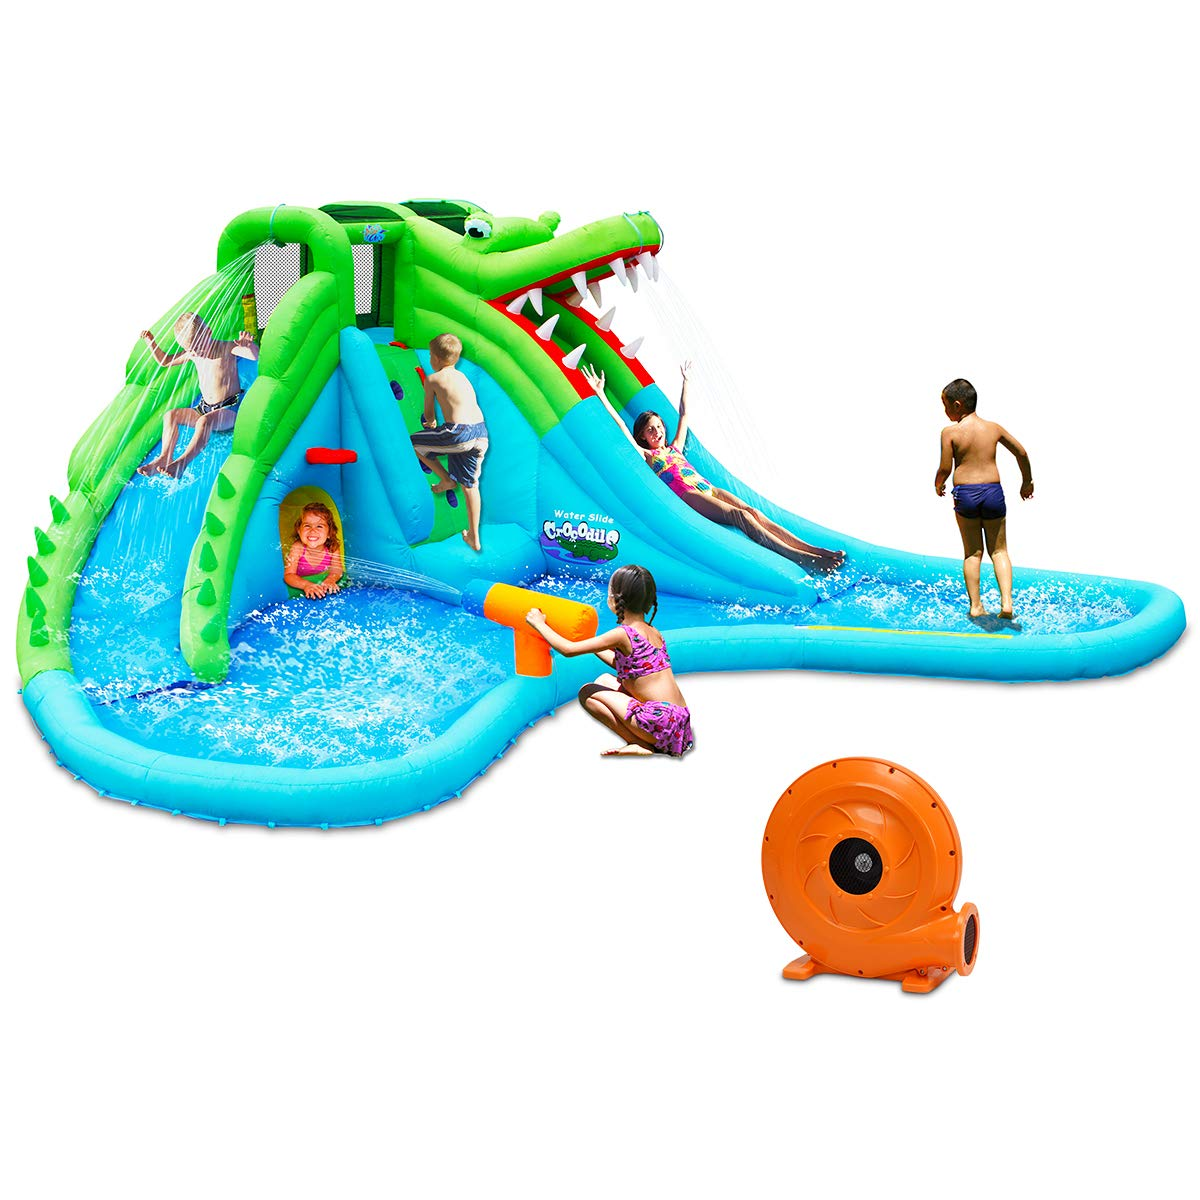 Costzon Inflatable Pool Bouncer, Crocodile Themed Bounce House w/Two Water Slides, Climbing Wall, Basketball Rim, Tunnel, Kids Water Park, Including Carry Bag, Hose, Repair Kit, 780W Air Blower by Costzon